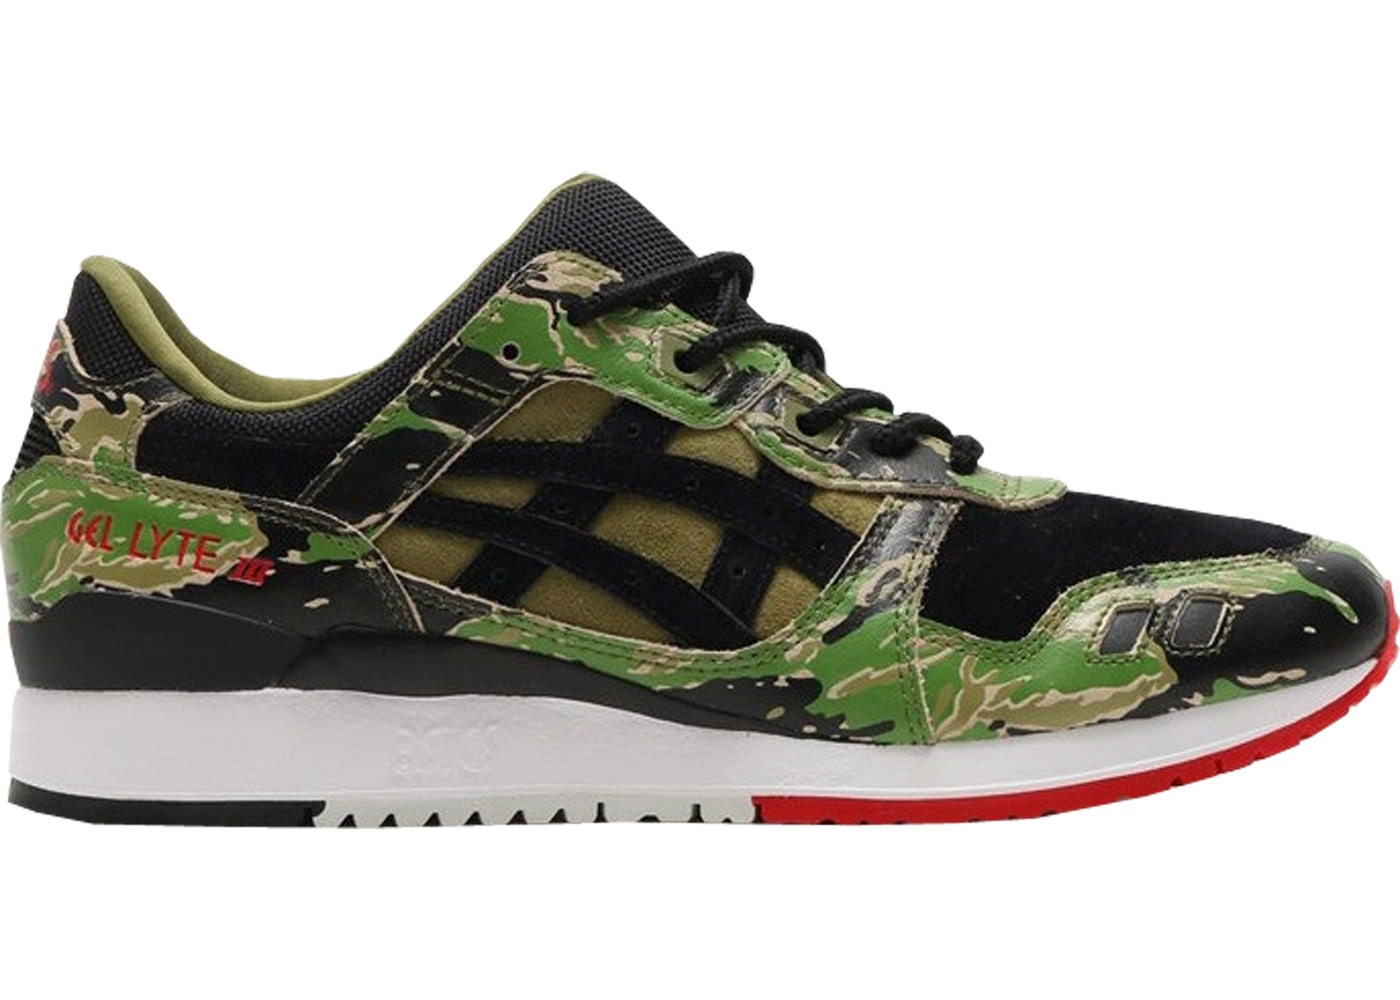 316407eed2486 Sell. or Ask. Size: 9.5. View All Bids. ASICS Gel-Lyte III Atmos Green Camo